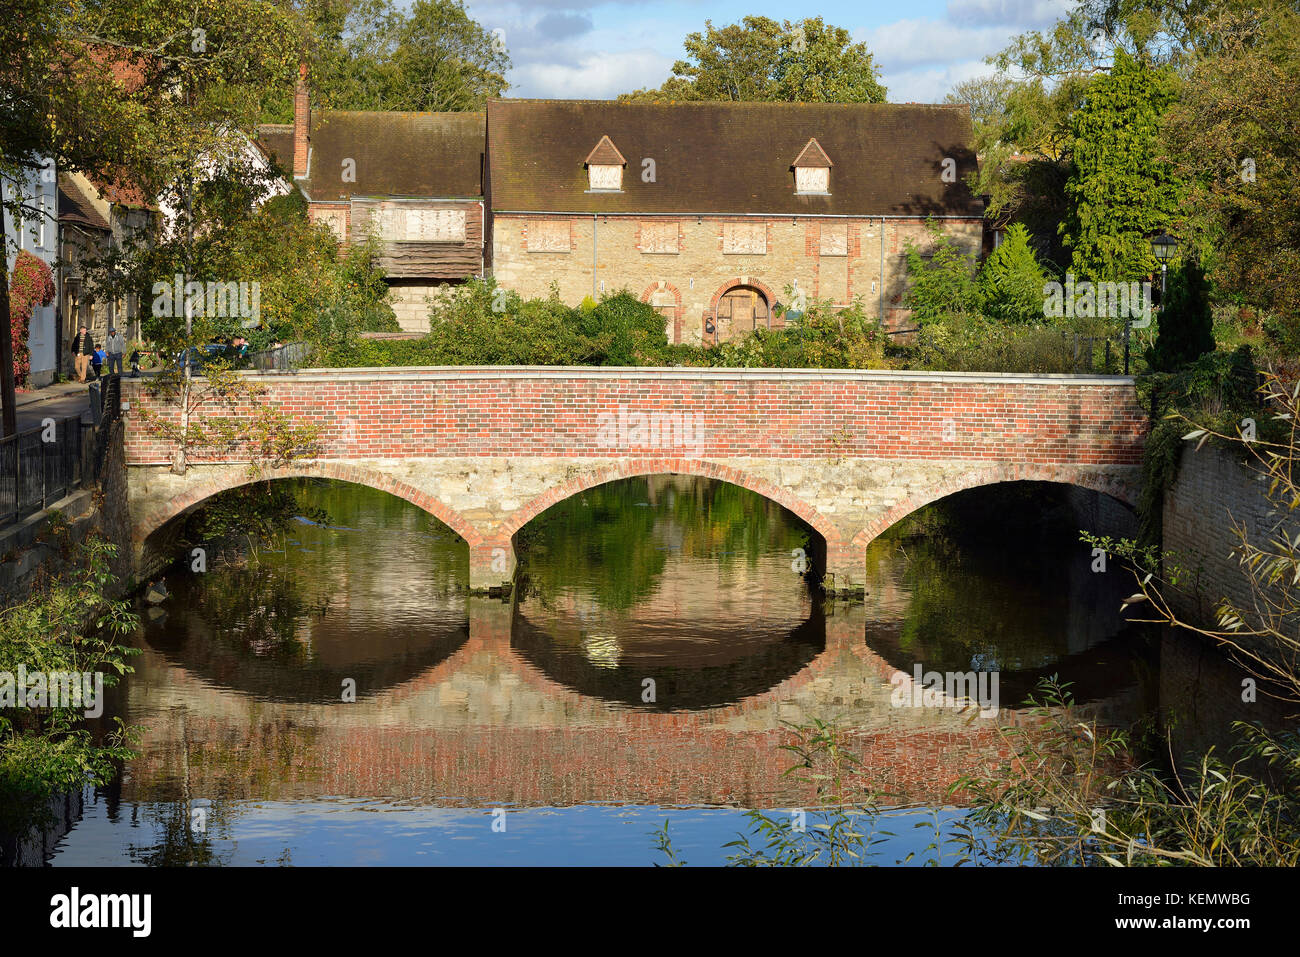 Brick Bridge over Upper Reaches, Abingdon Part of 10th Century Abbey Mill and former Hotel - Stock Image